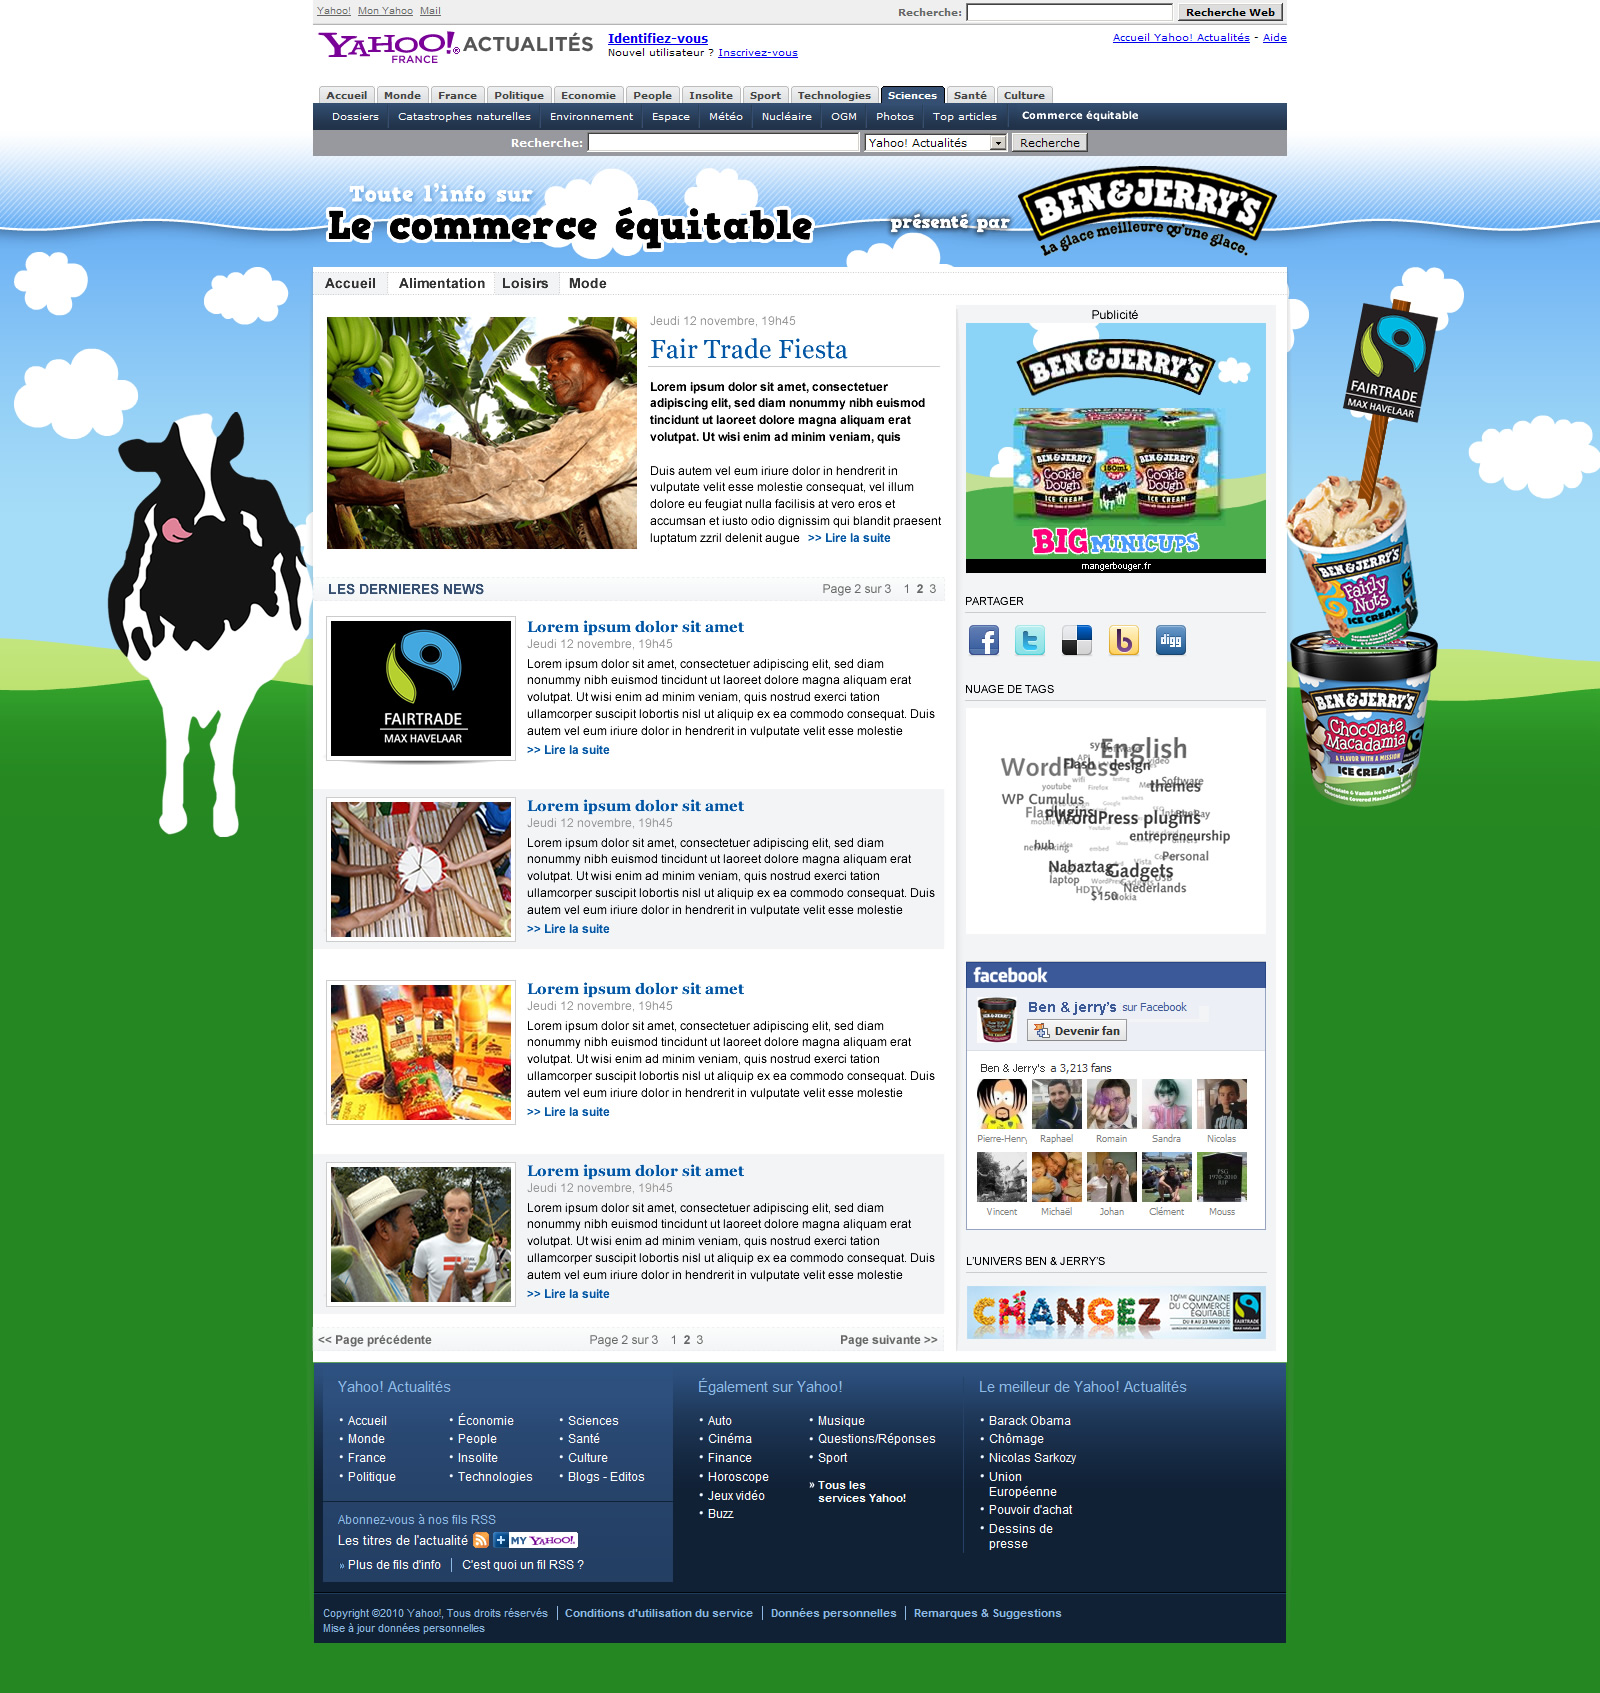 Web design and development in Farnborough, Hampshire